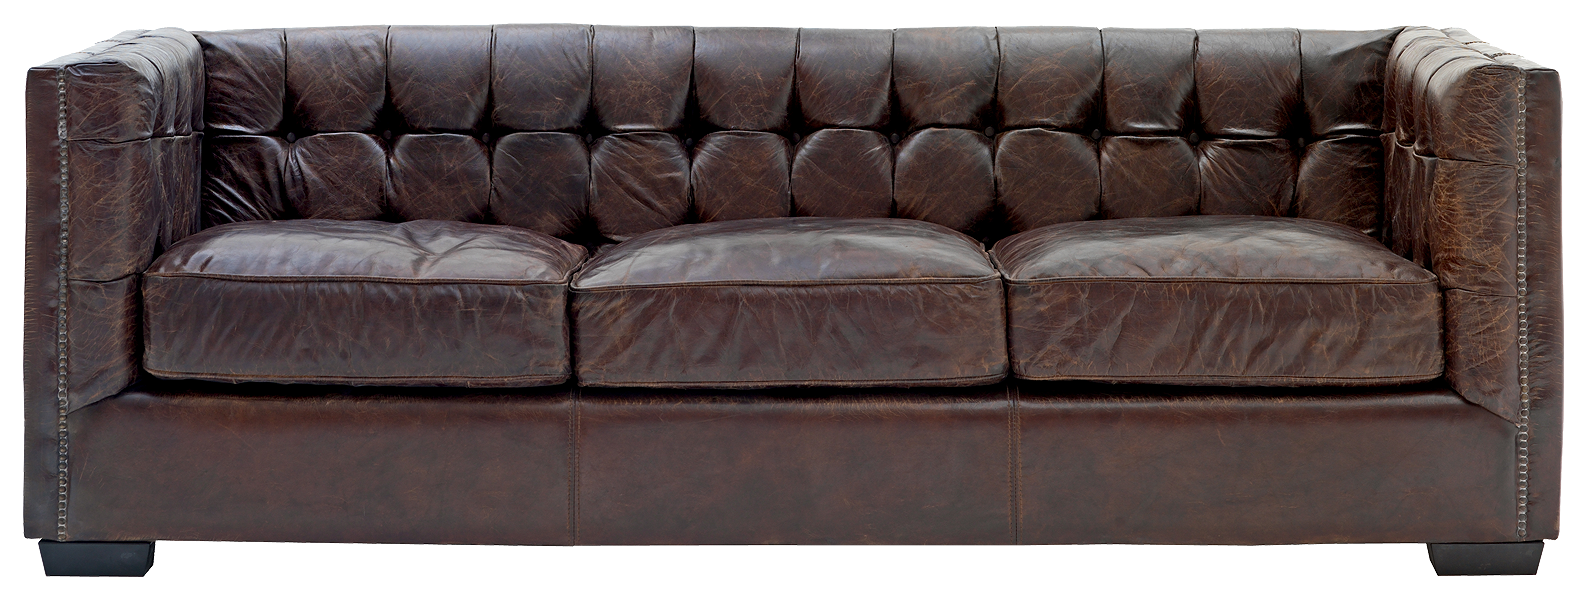 Couch png. Sofa images free download svg library library